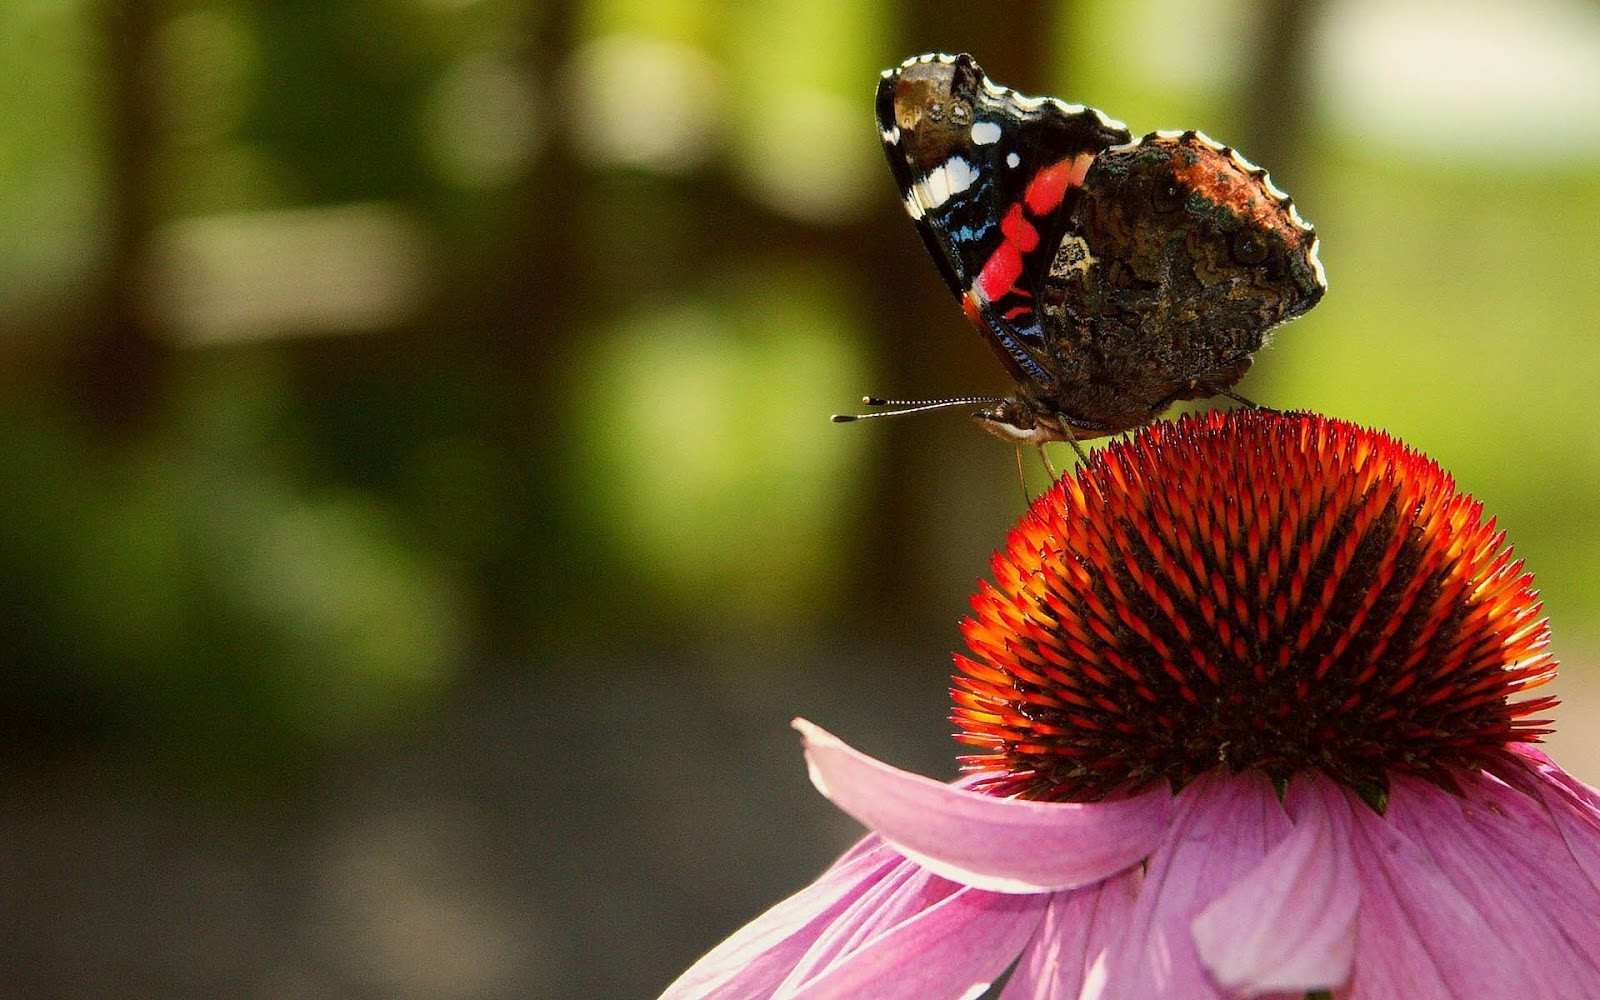 Good Wallpaper High Quality Butterfly - Butterfly-Wallpapers-Free-Download-009  Best Photo Reference_53677.jpg